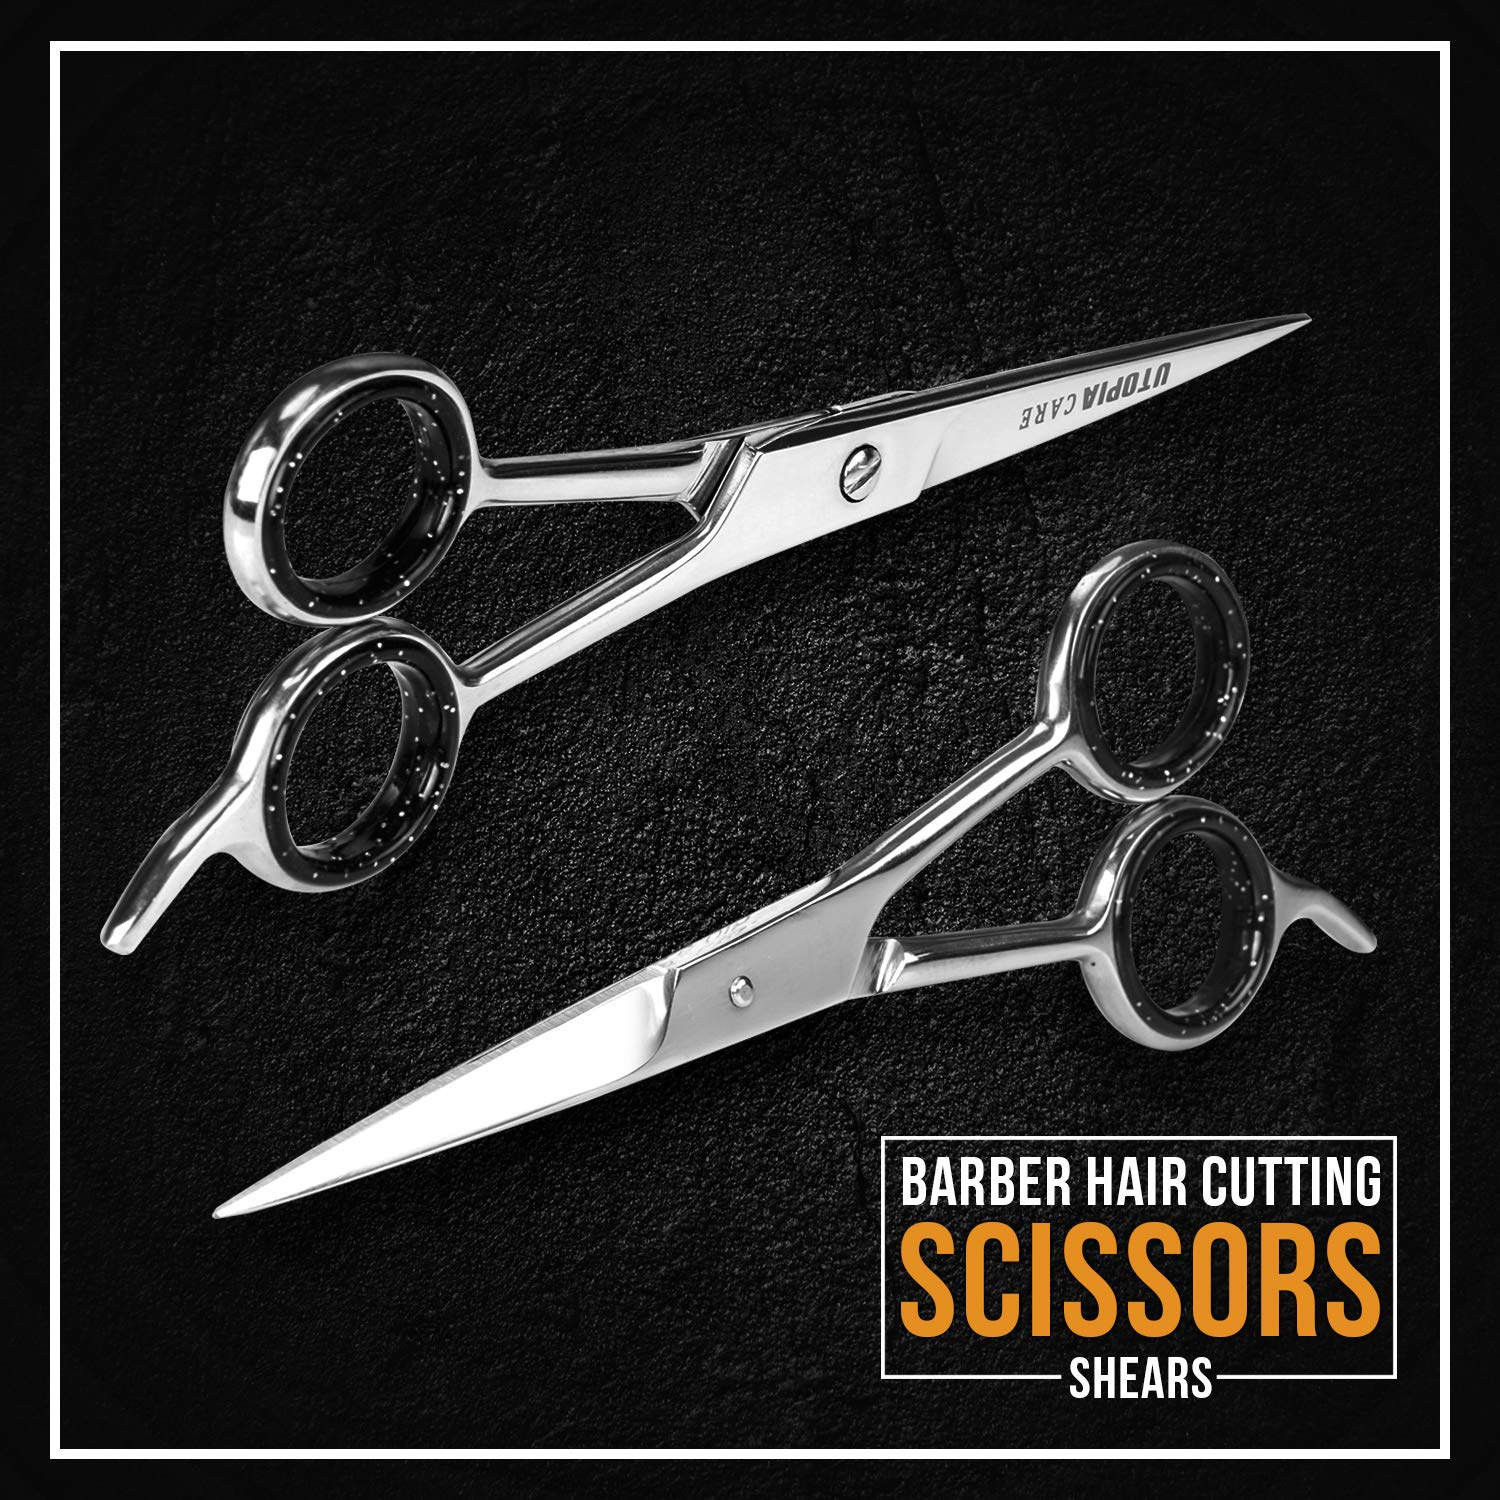 Professional Barber Hair Cutting Scissors/Shears (6.5-Inches) - Ice Tempered Stainless Steel Reinforced with Chromium to Resist Tarnish and Rust : Beauty